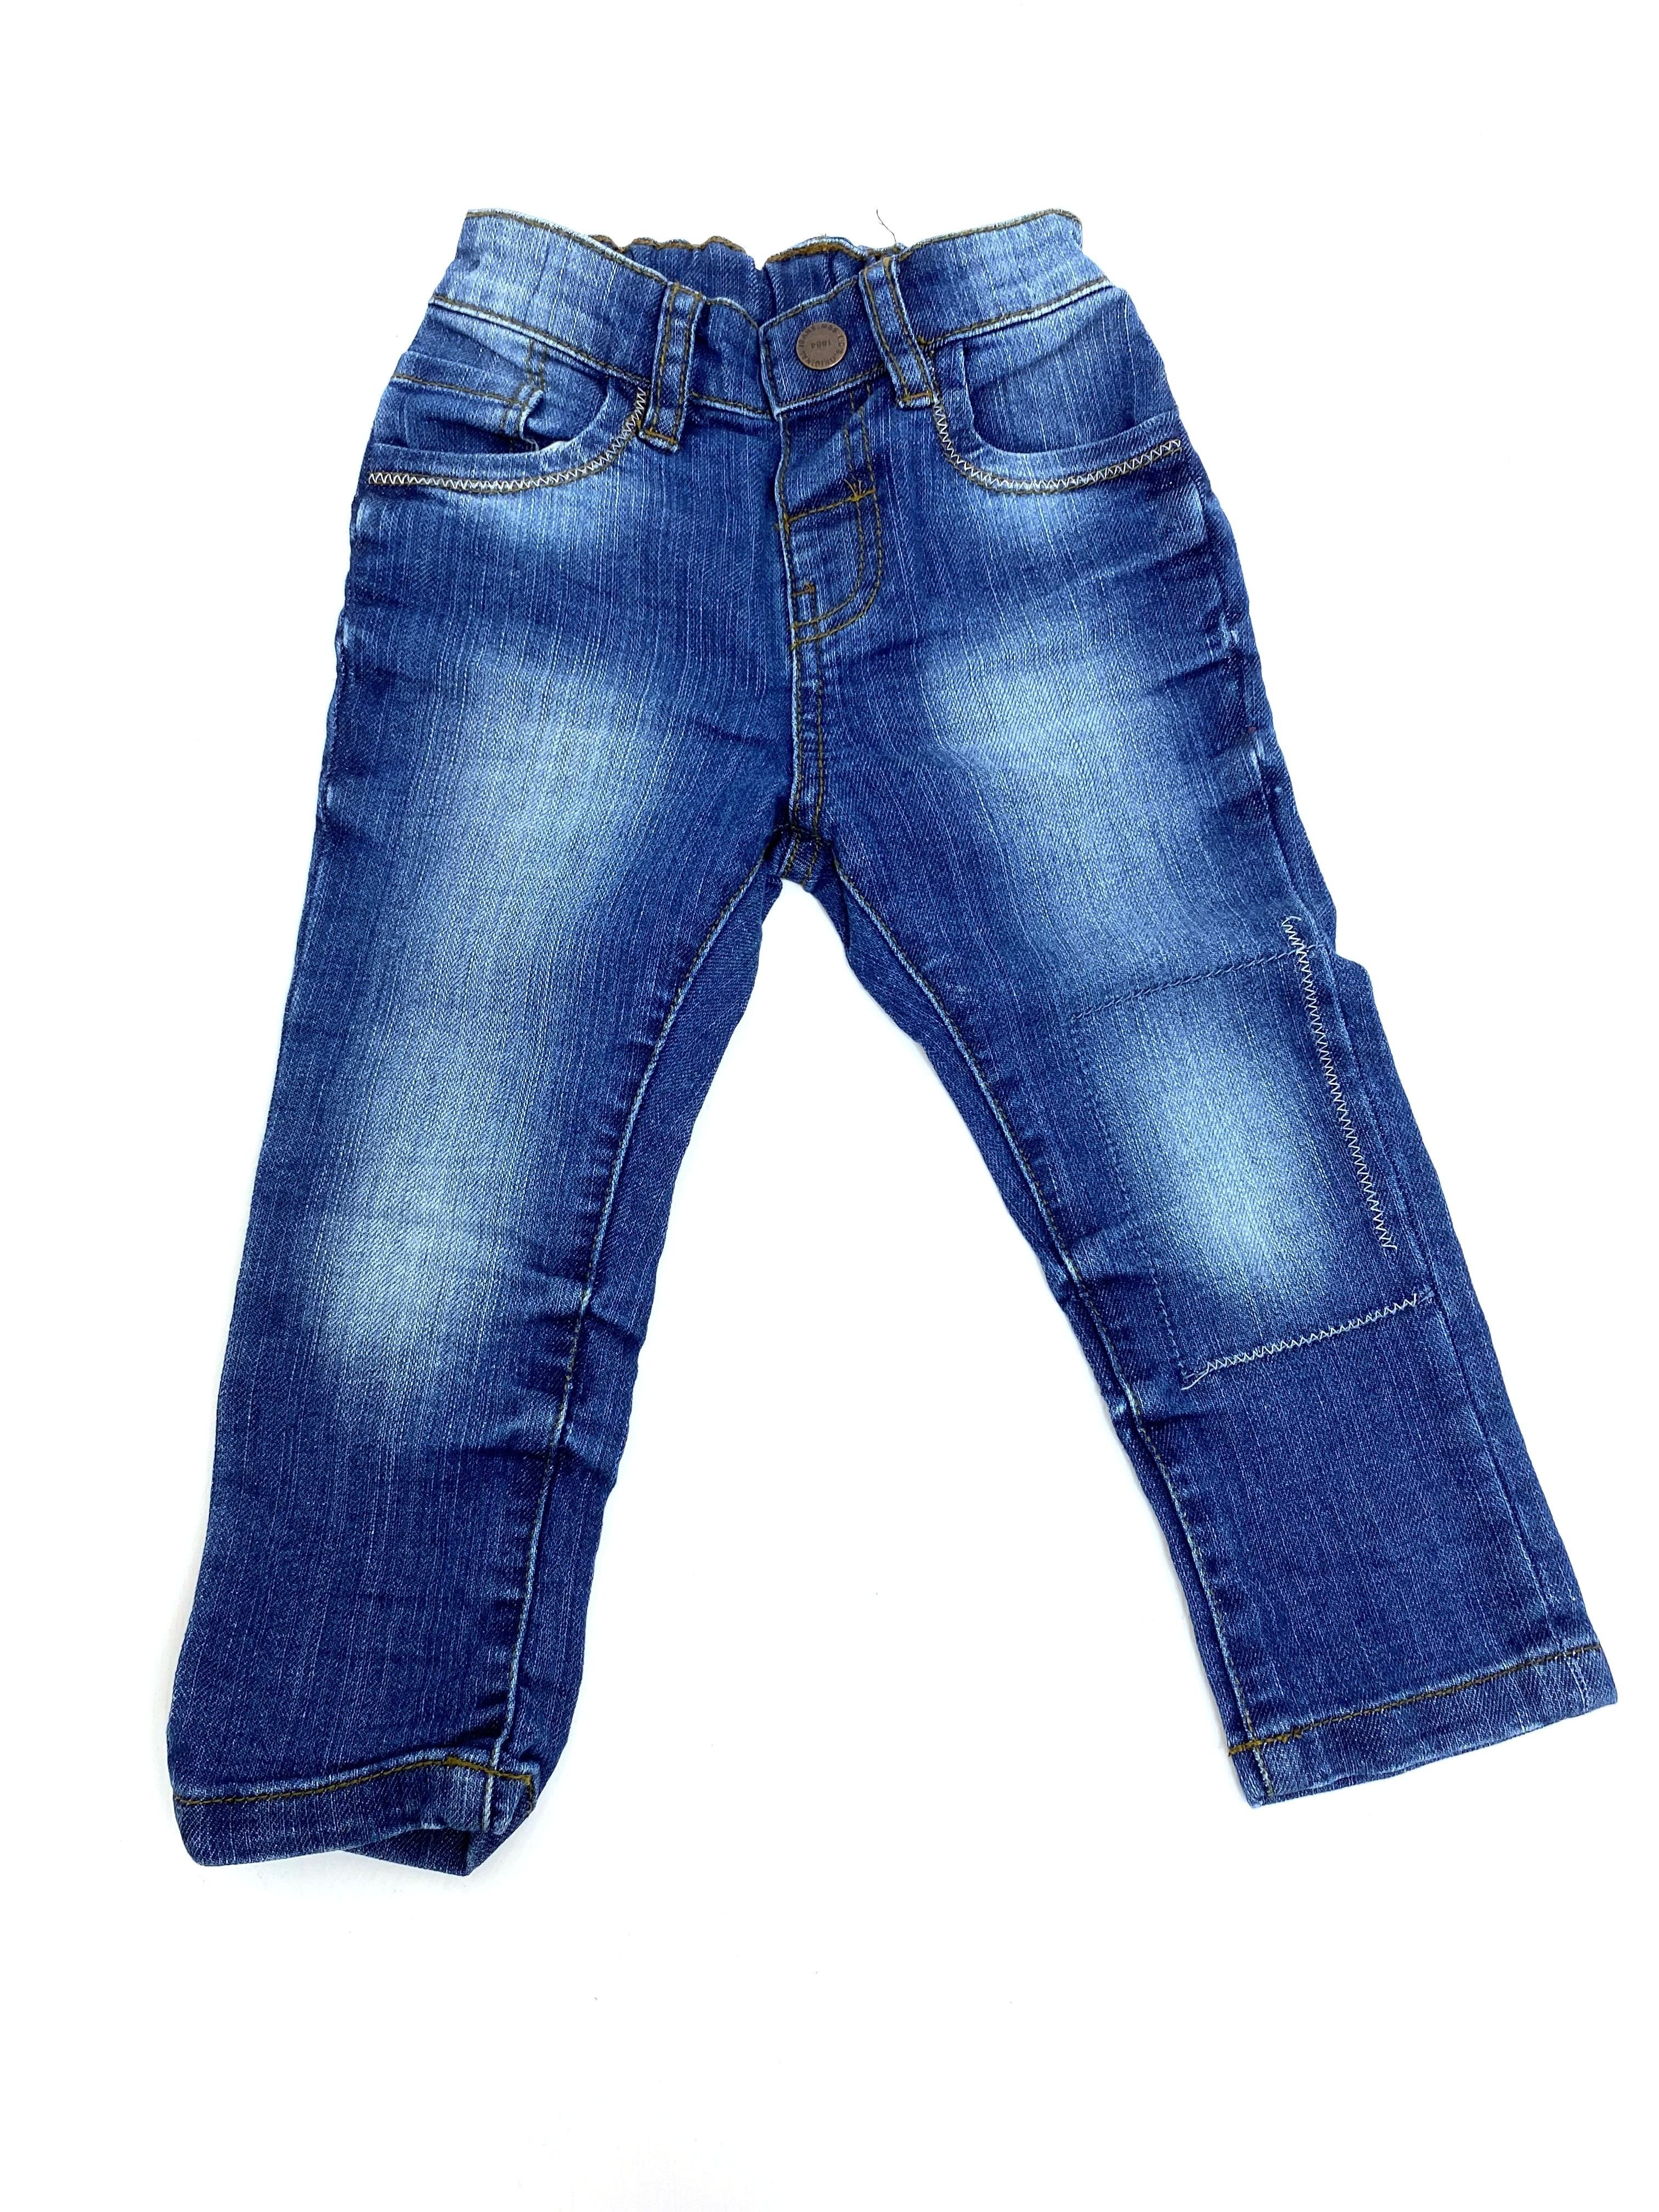 Ex Store Baby Boys Denim Blue Jeans PACK OF 6